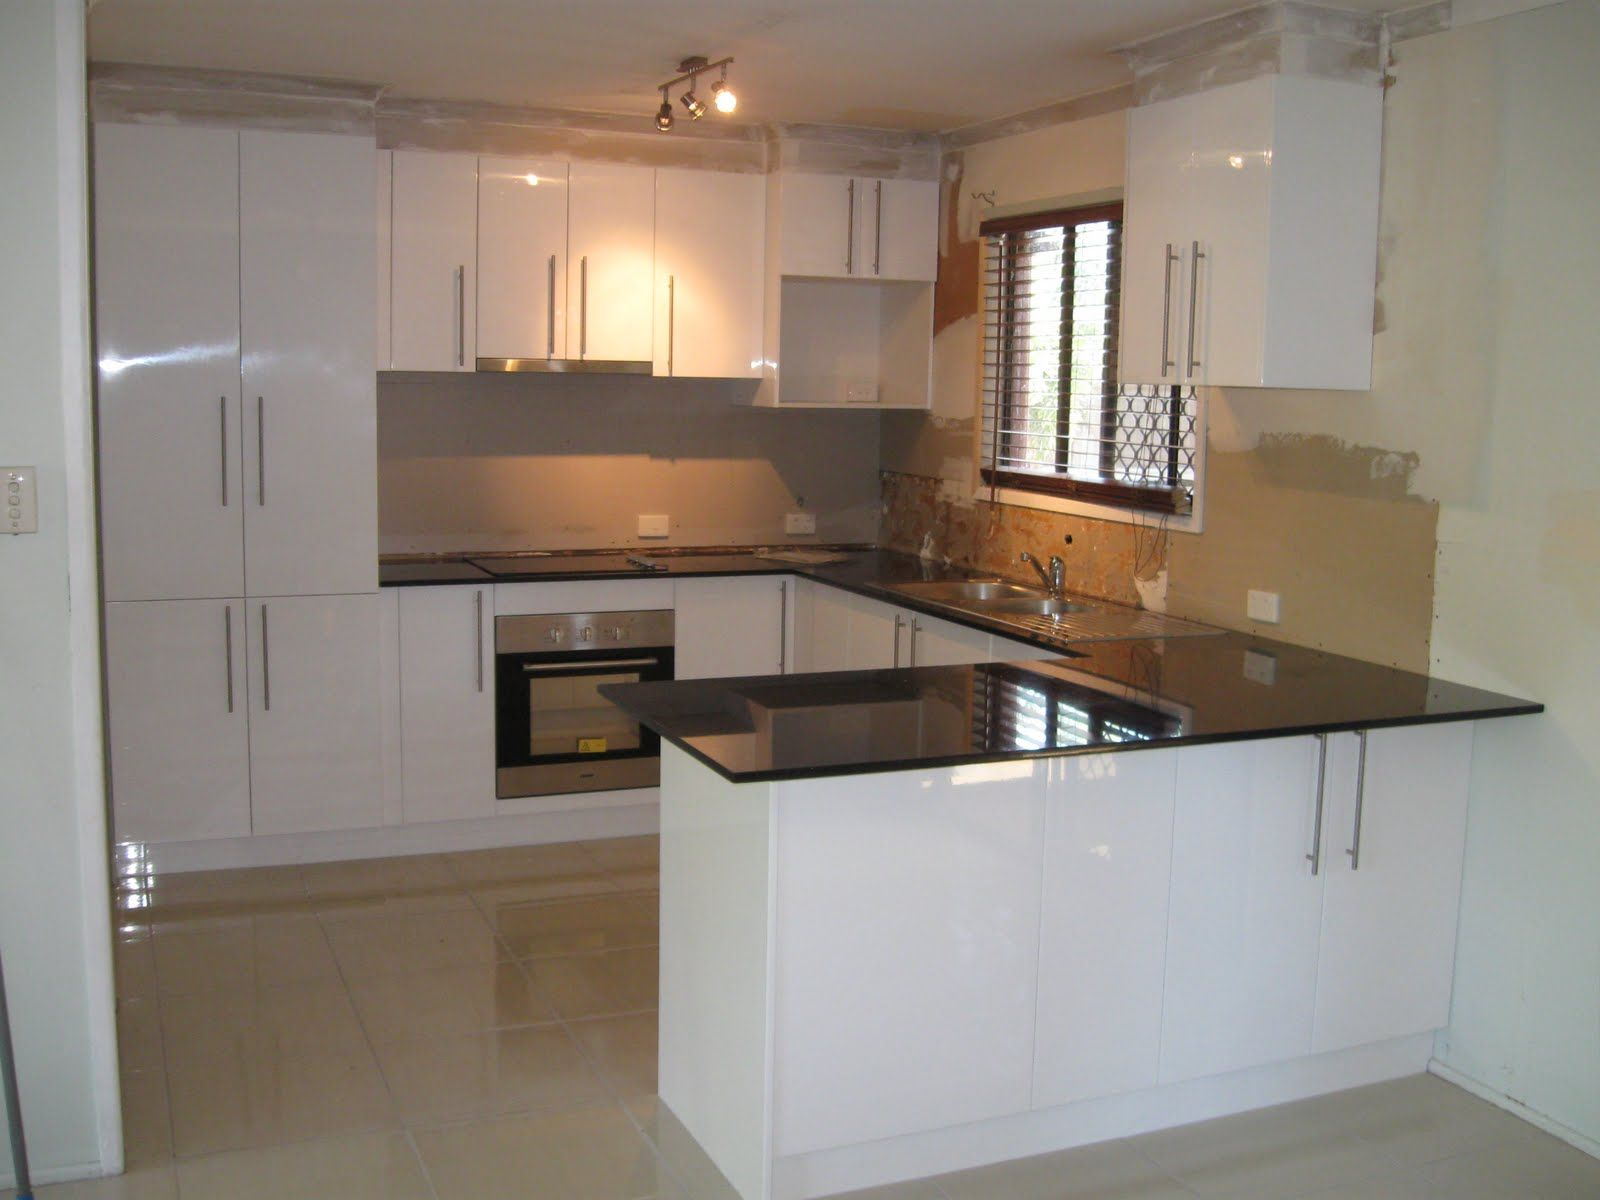 the u shaped kitchen layout is a prominent option for interior designers kitche small on kitchen ideas u shaped layout id=26009